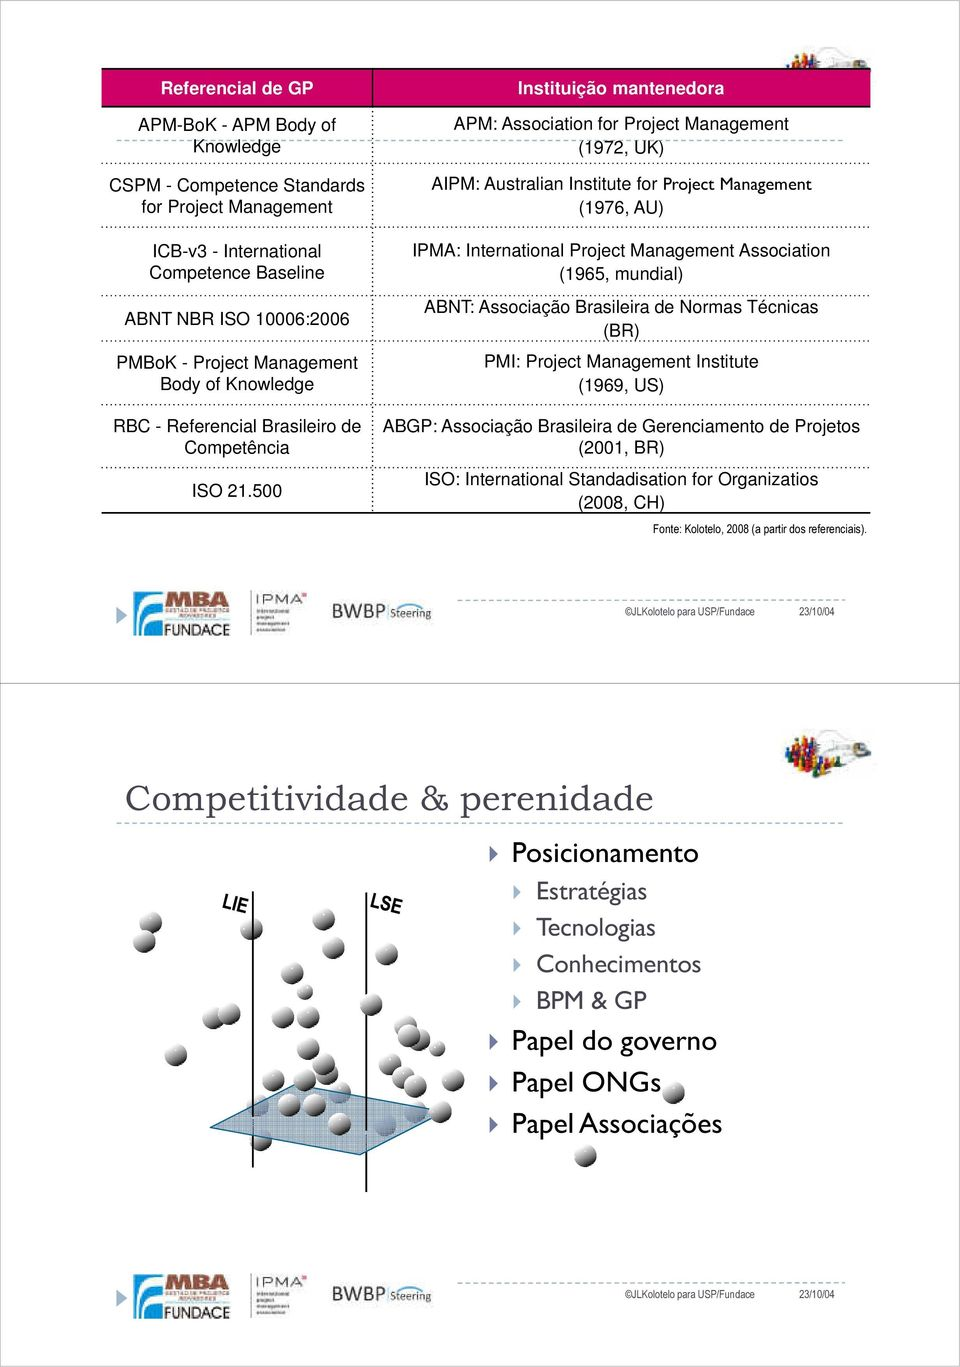 500 Instituição mantenedora APM: Association for Project Management (1972, UK) AIPM: Australian Institute for Project Management (1976, AU) IPMA: International Project Management Association (1965,